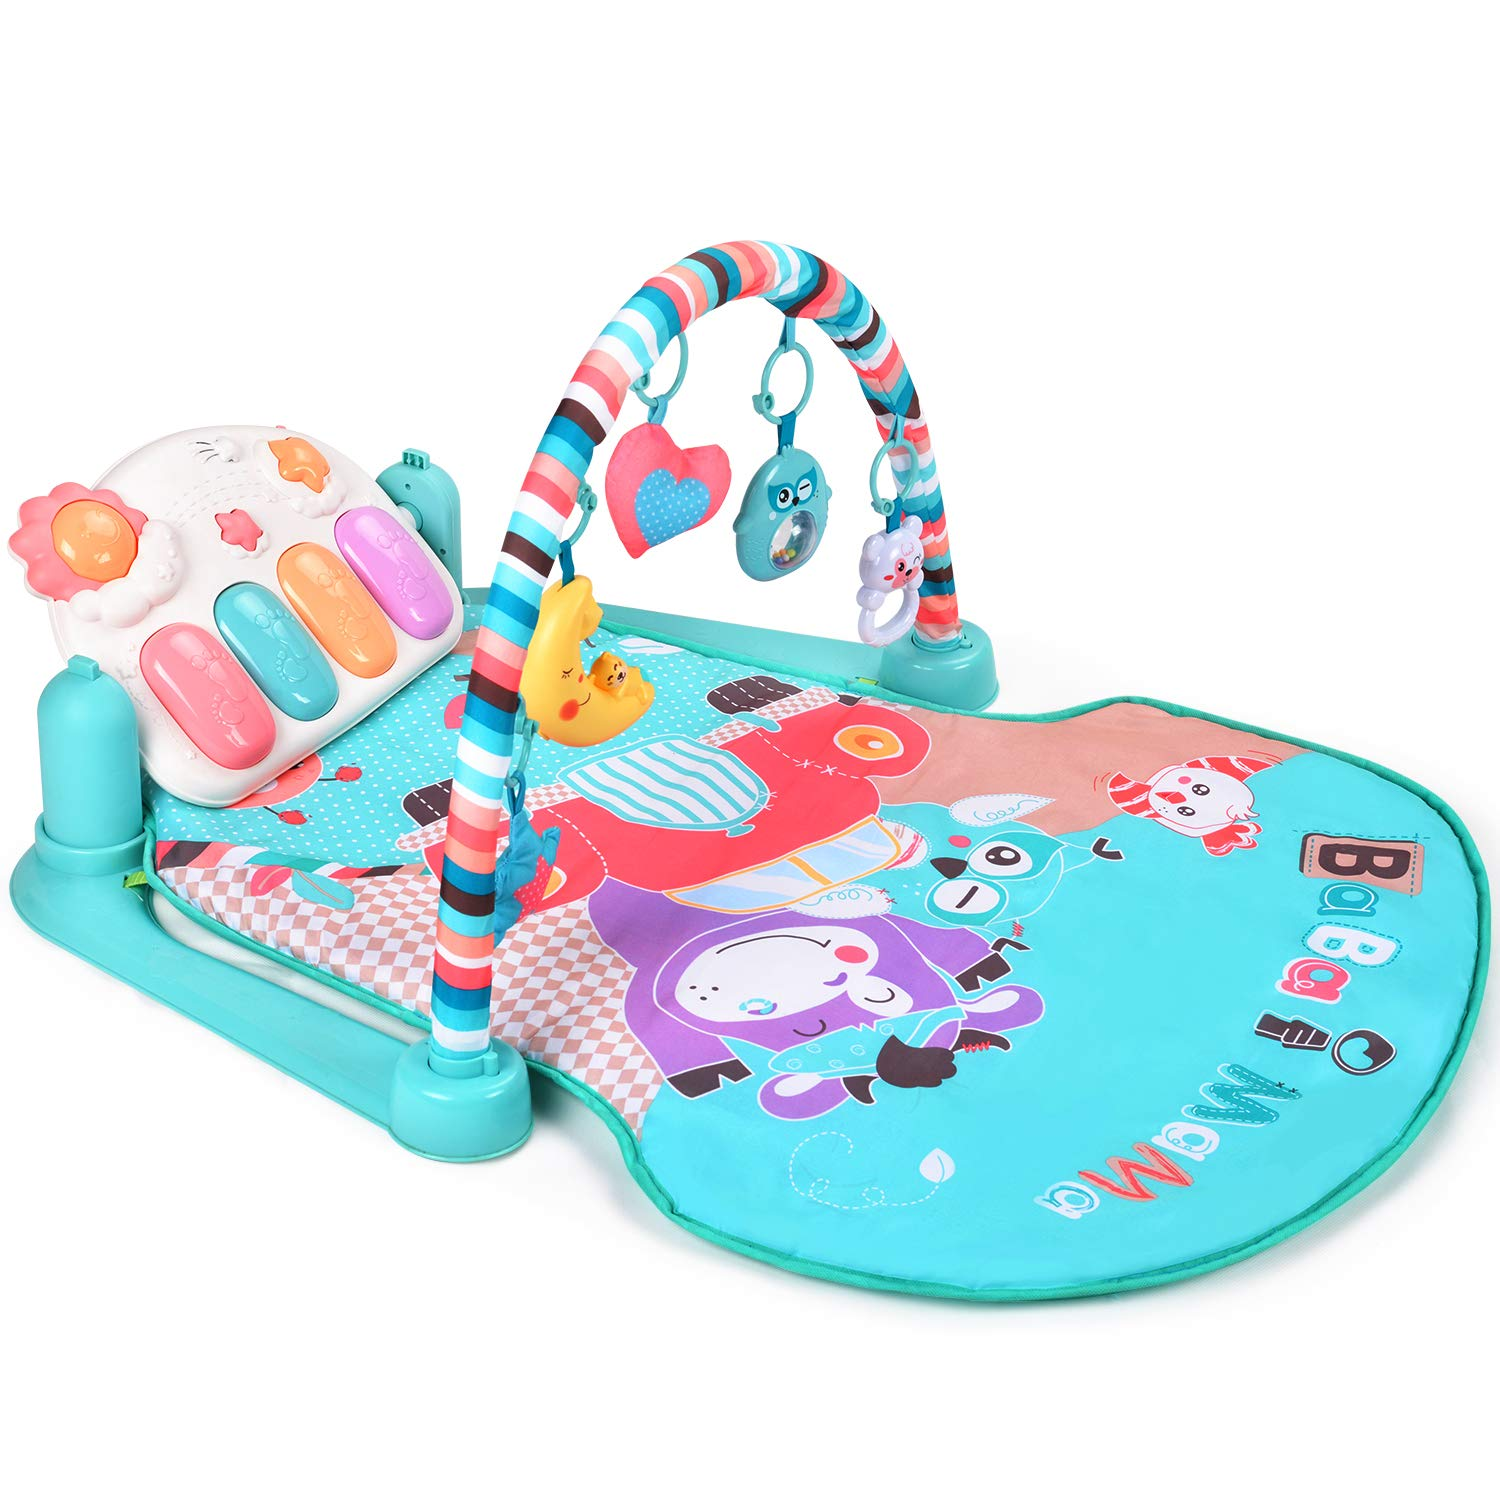 fe1583cbf1c7 Amazon.com   Large Baby Play Mat BATTOP Kick and Play Piano Gym - 5 Toys  and Musical Activity Baby Gym for 0-36 Month Boys and Girls (Macaron)   Baby